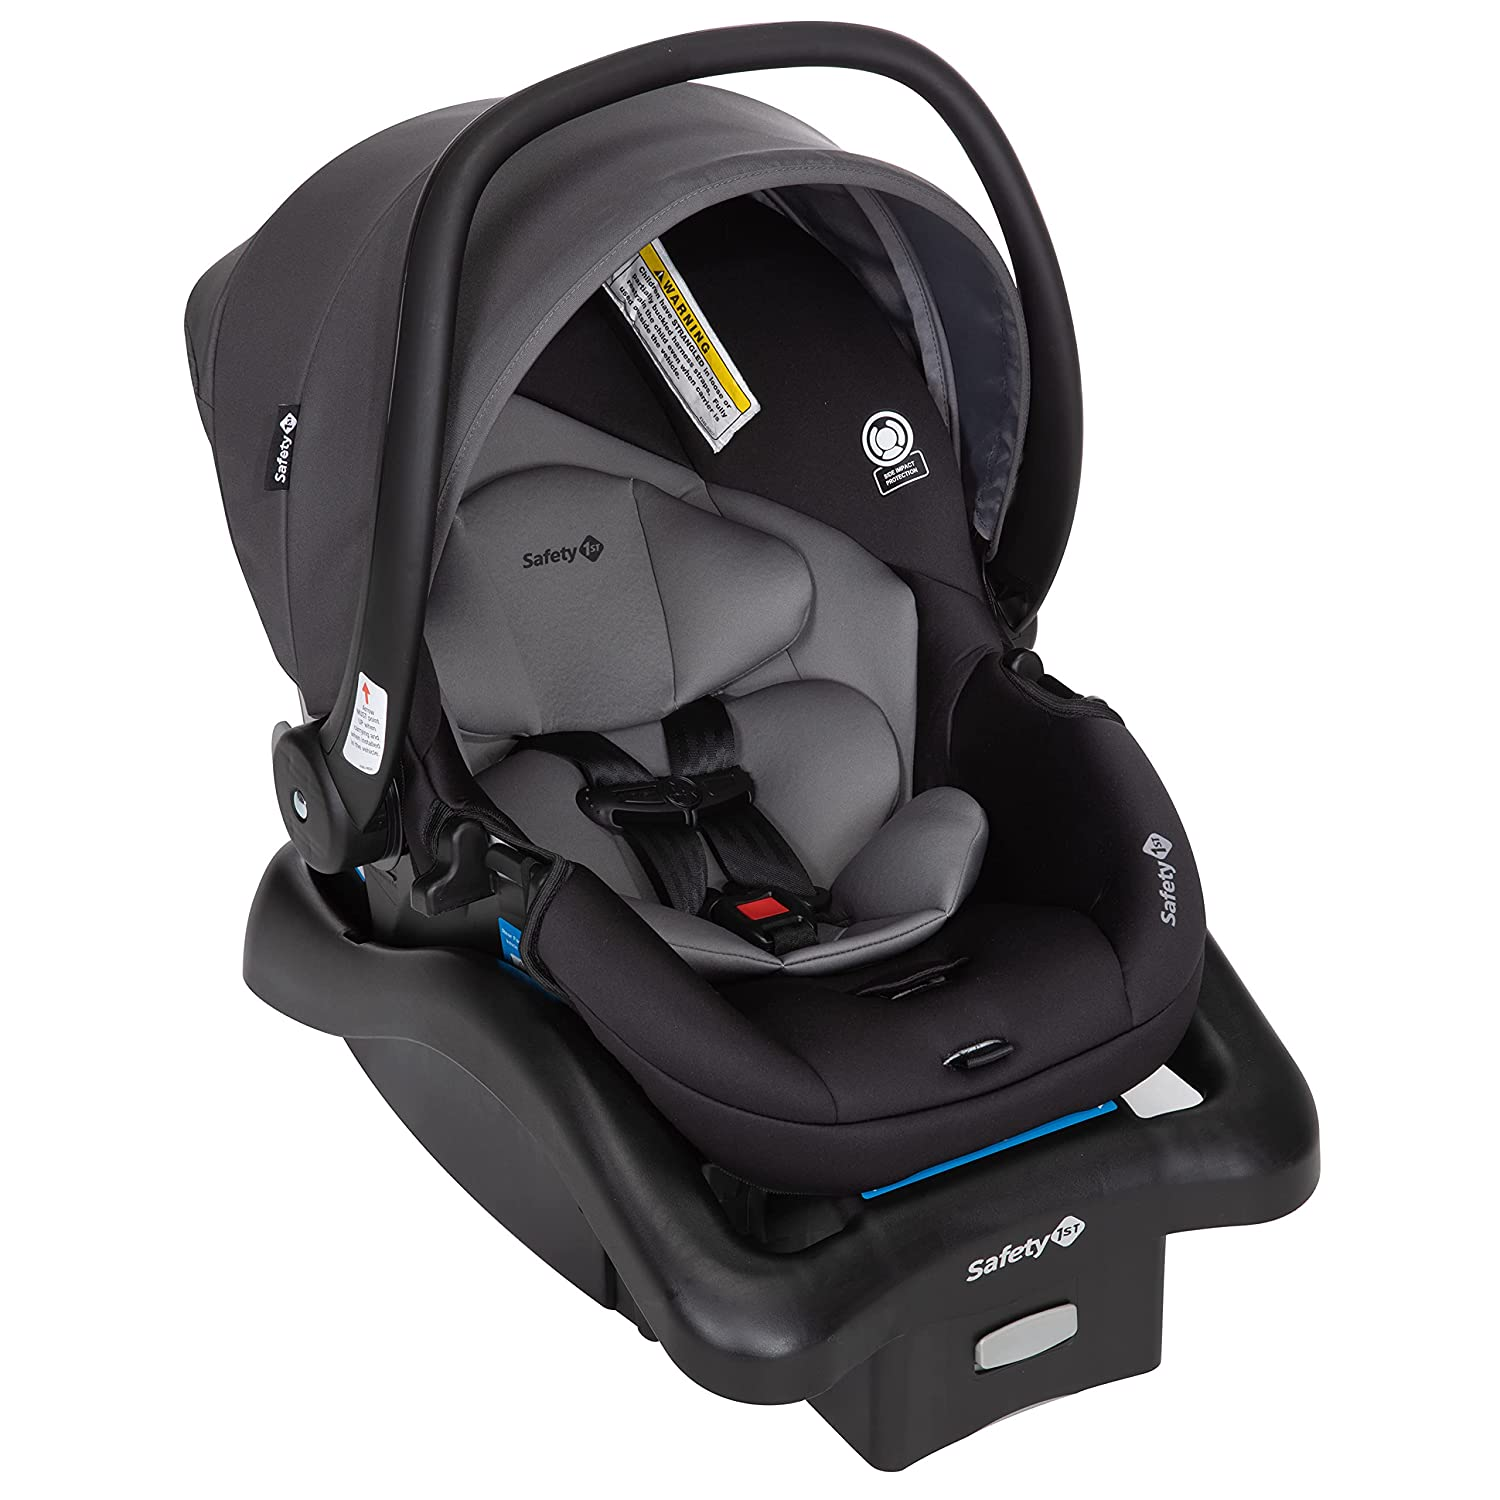 Safety 1st Smooth Ride Travel System with OnBoard 35 LT Infant Car Seat, Monument